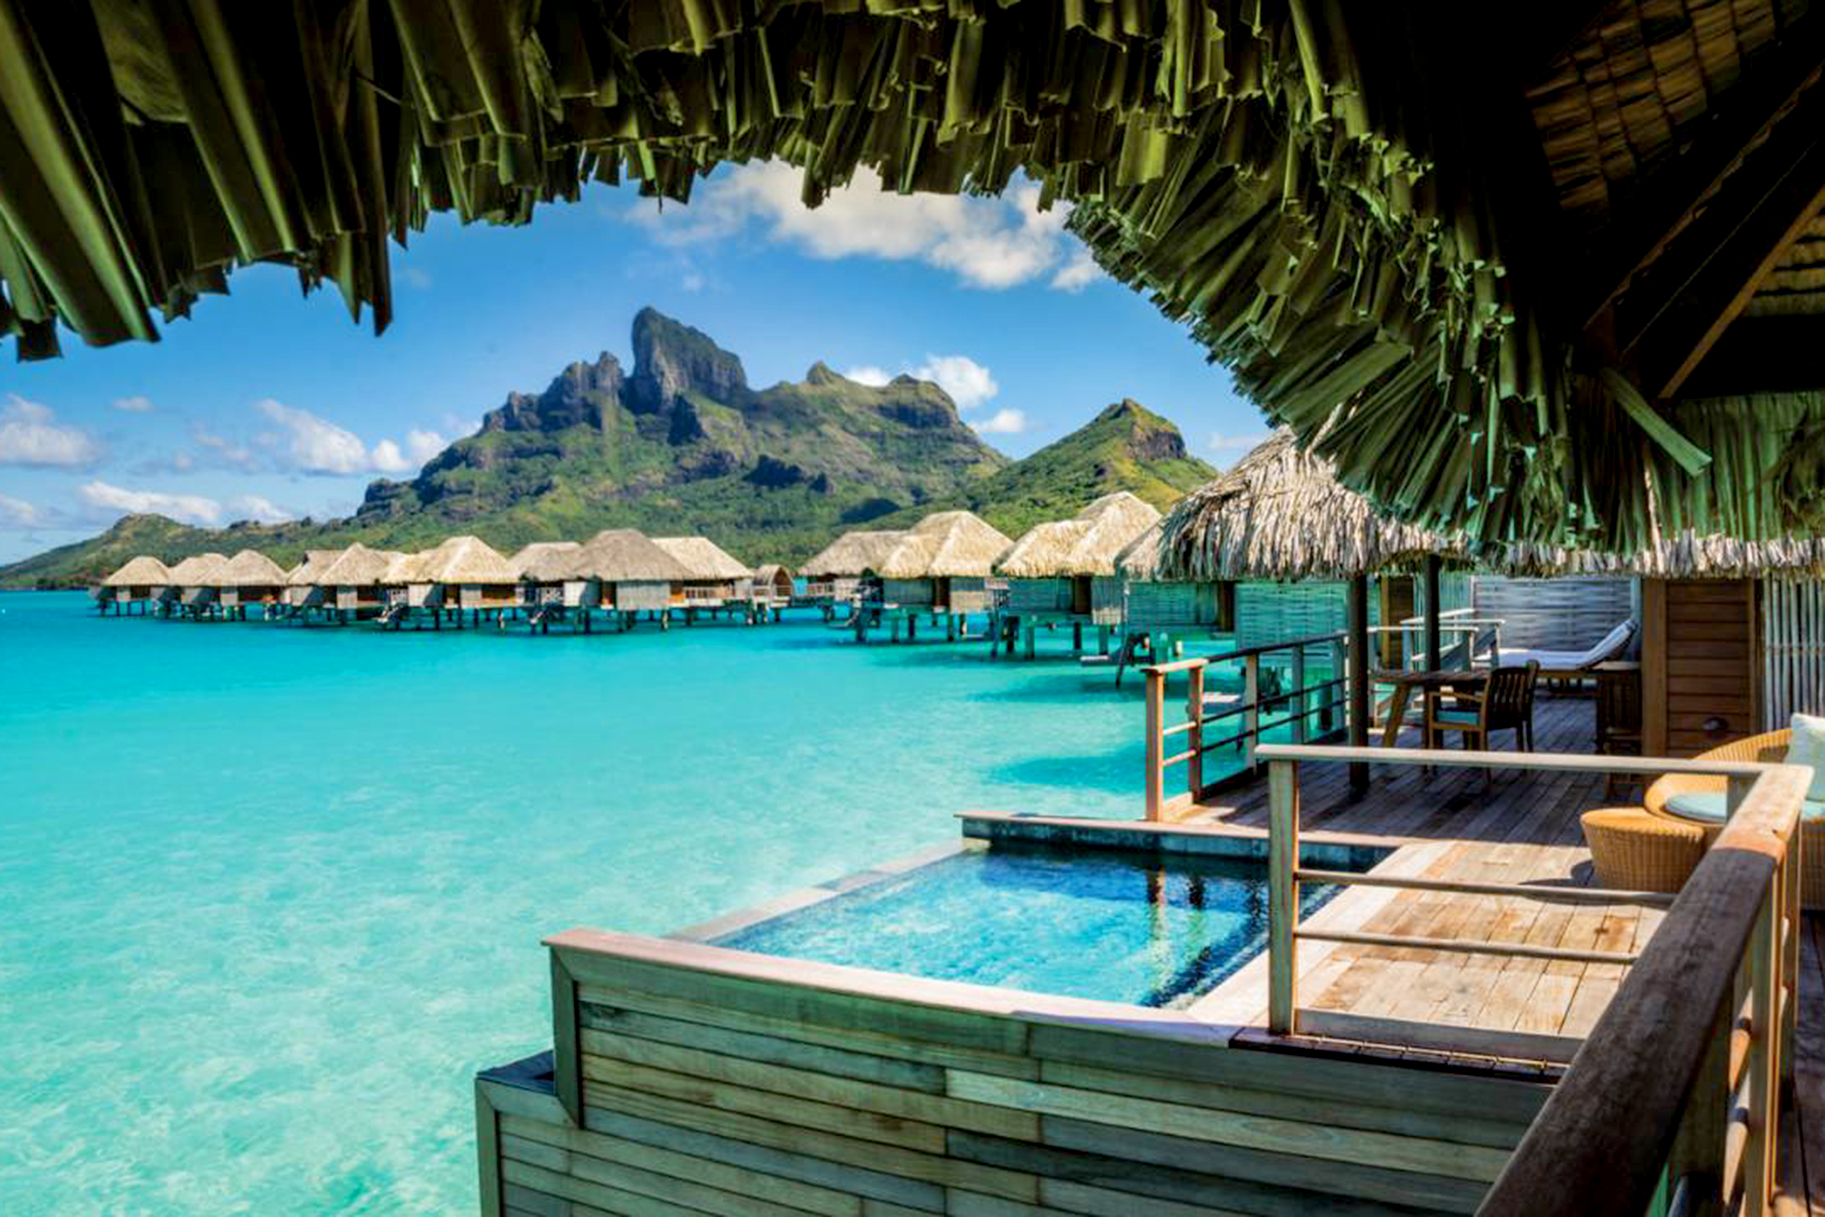 Glamorous Best Overwater Bungalows | Jetset for Best Overwater Bungalows